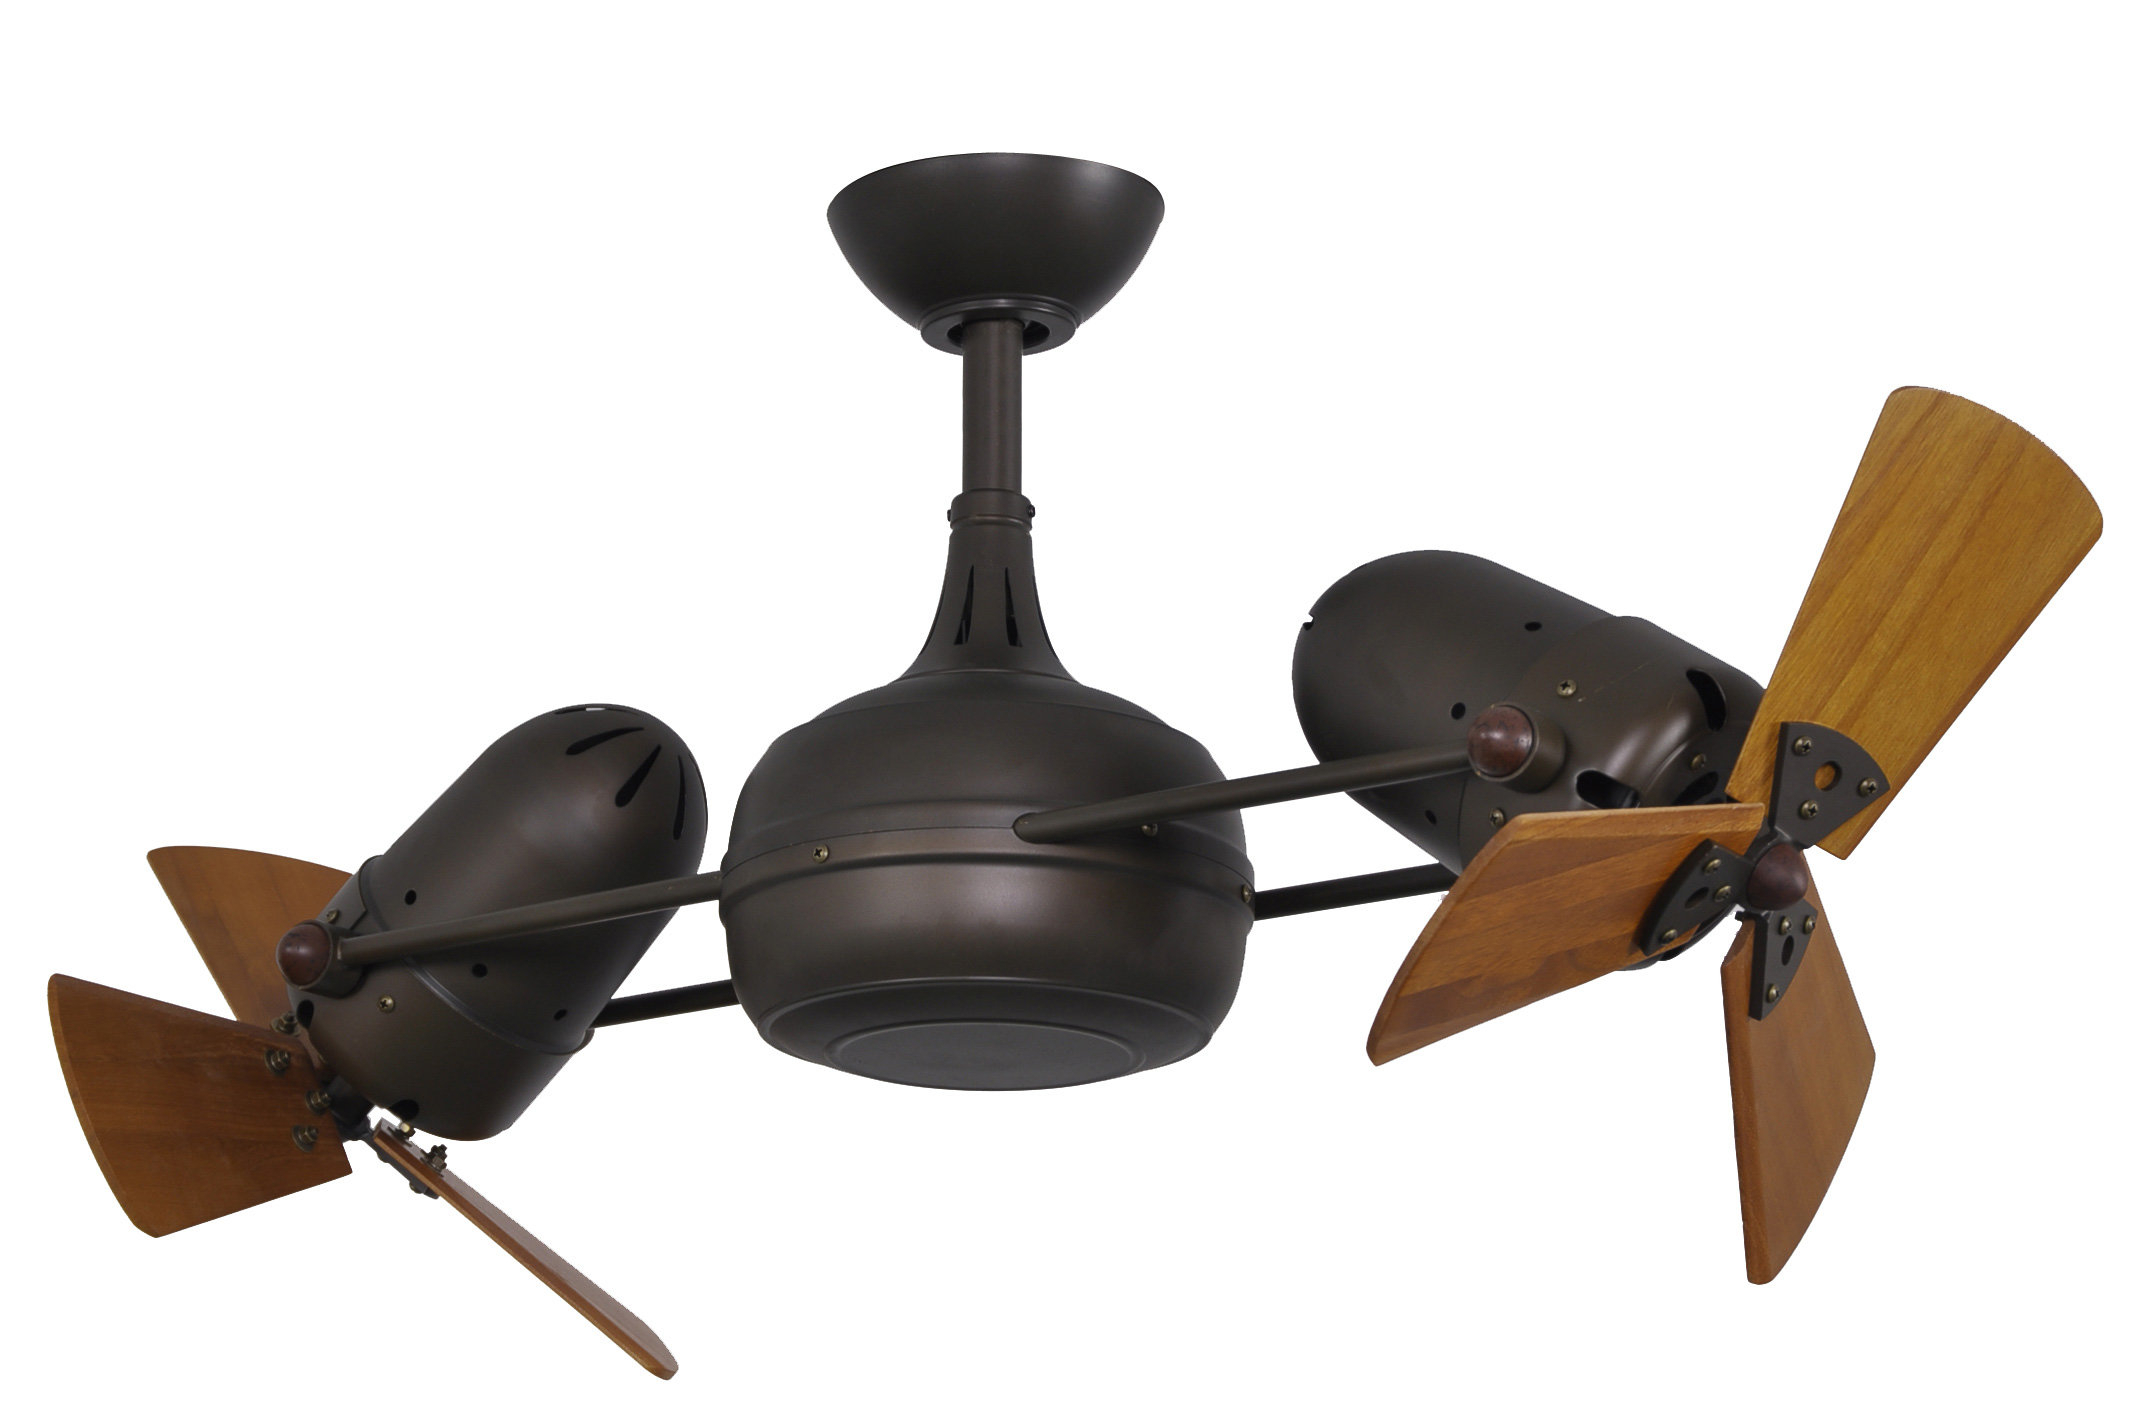 Valerian 3 Blades Ceiling Fan With Remote With Preferred Valerian 5 Blade Ceiling Fans (Gallery 4 of 20)